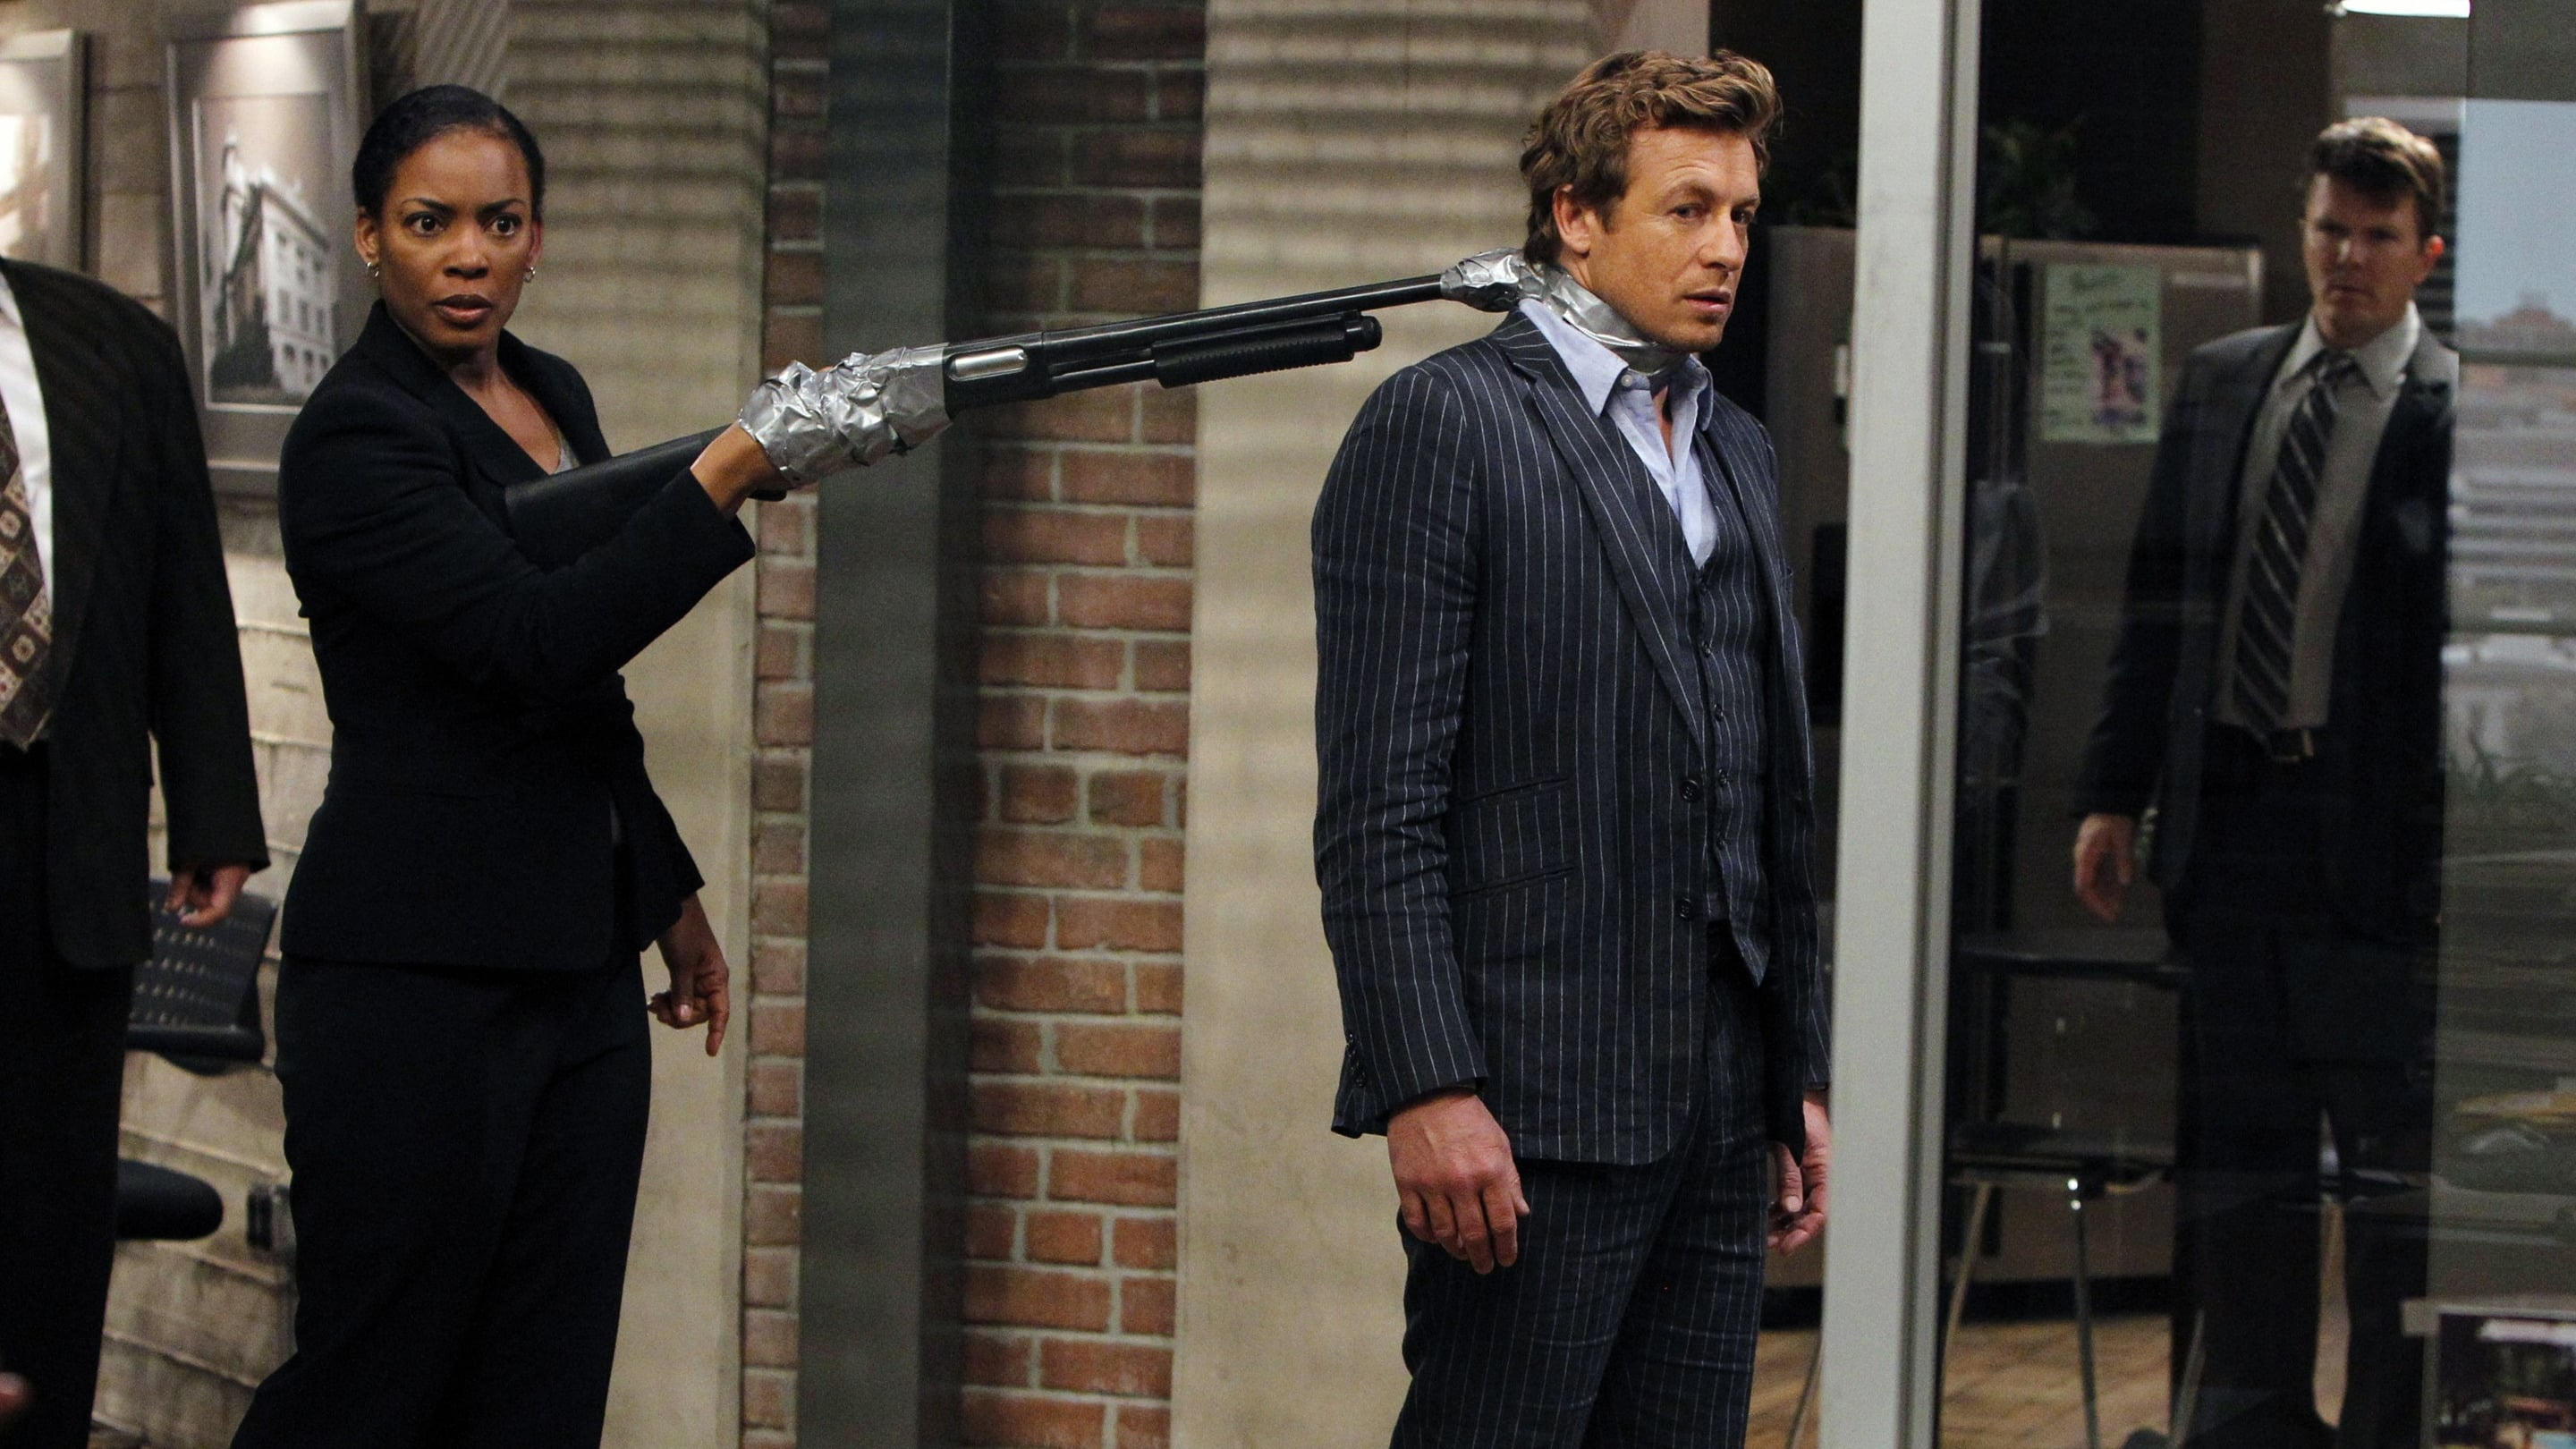 The Mentalist Season 3 Episode 16 S03e016 Just Watch